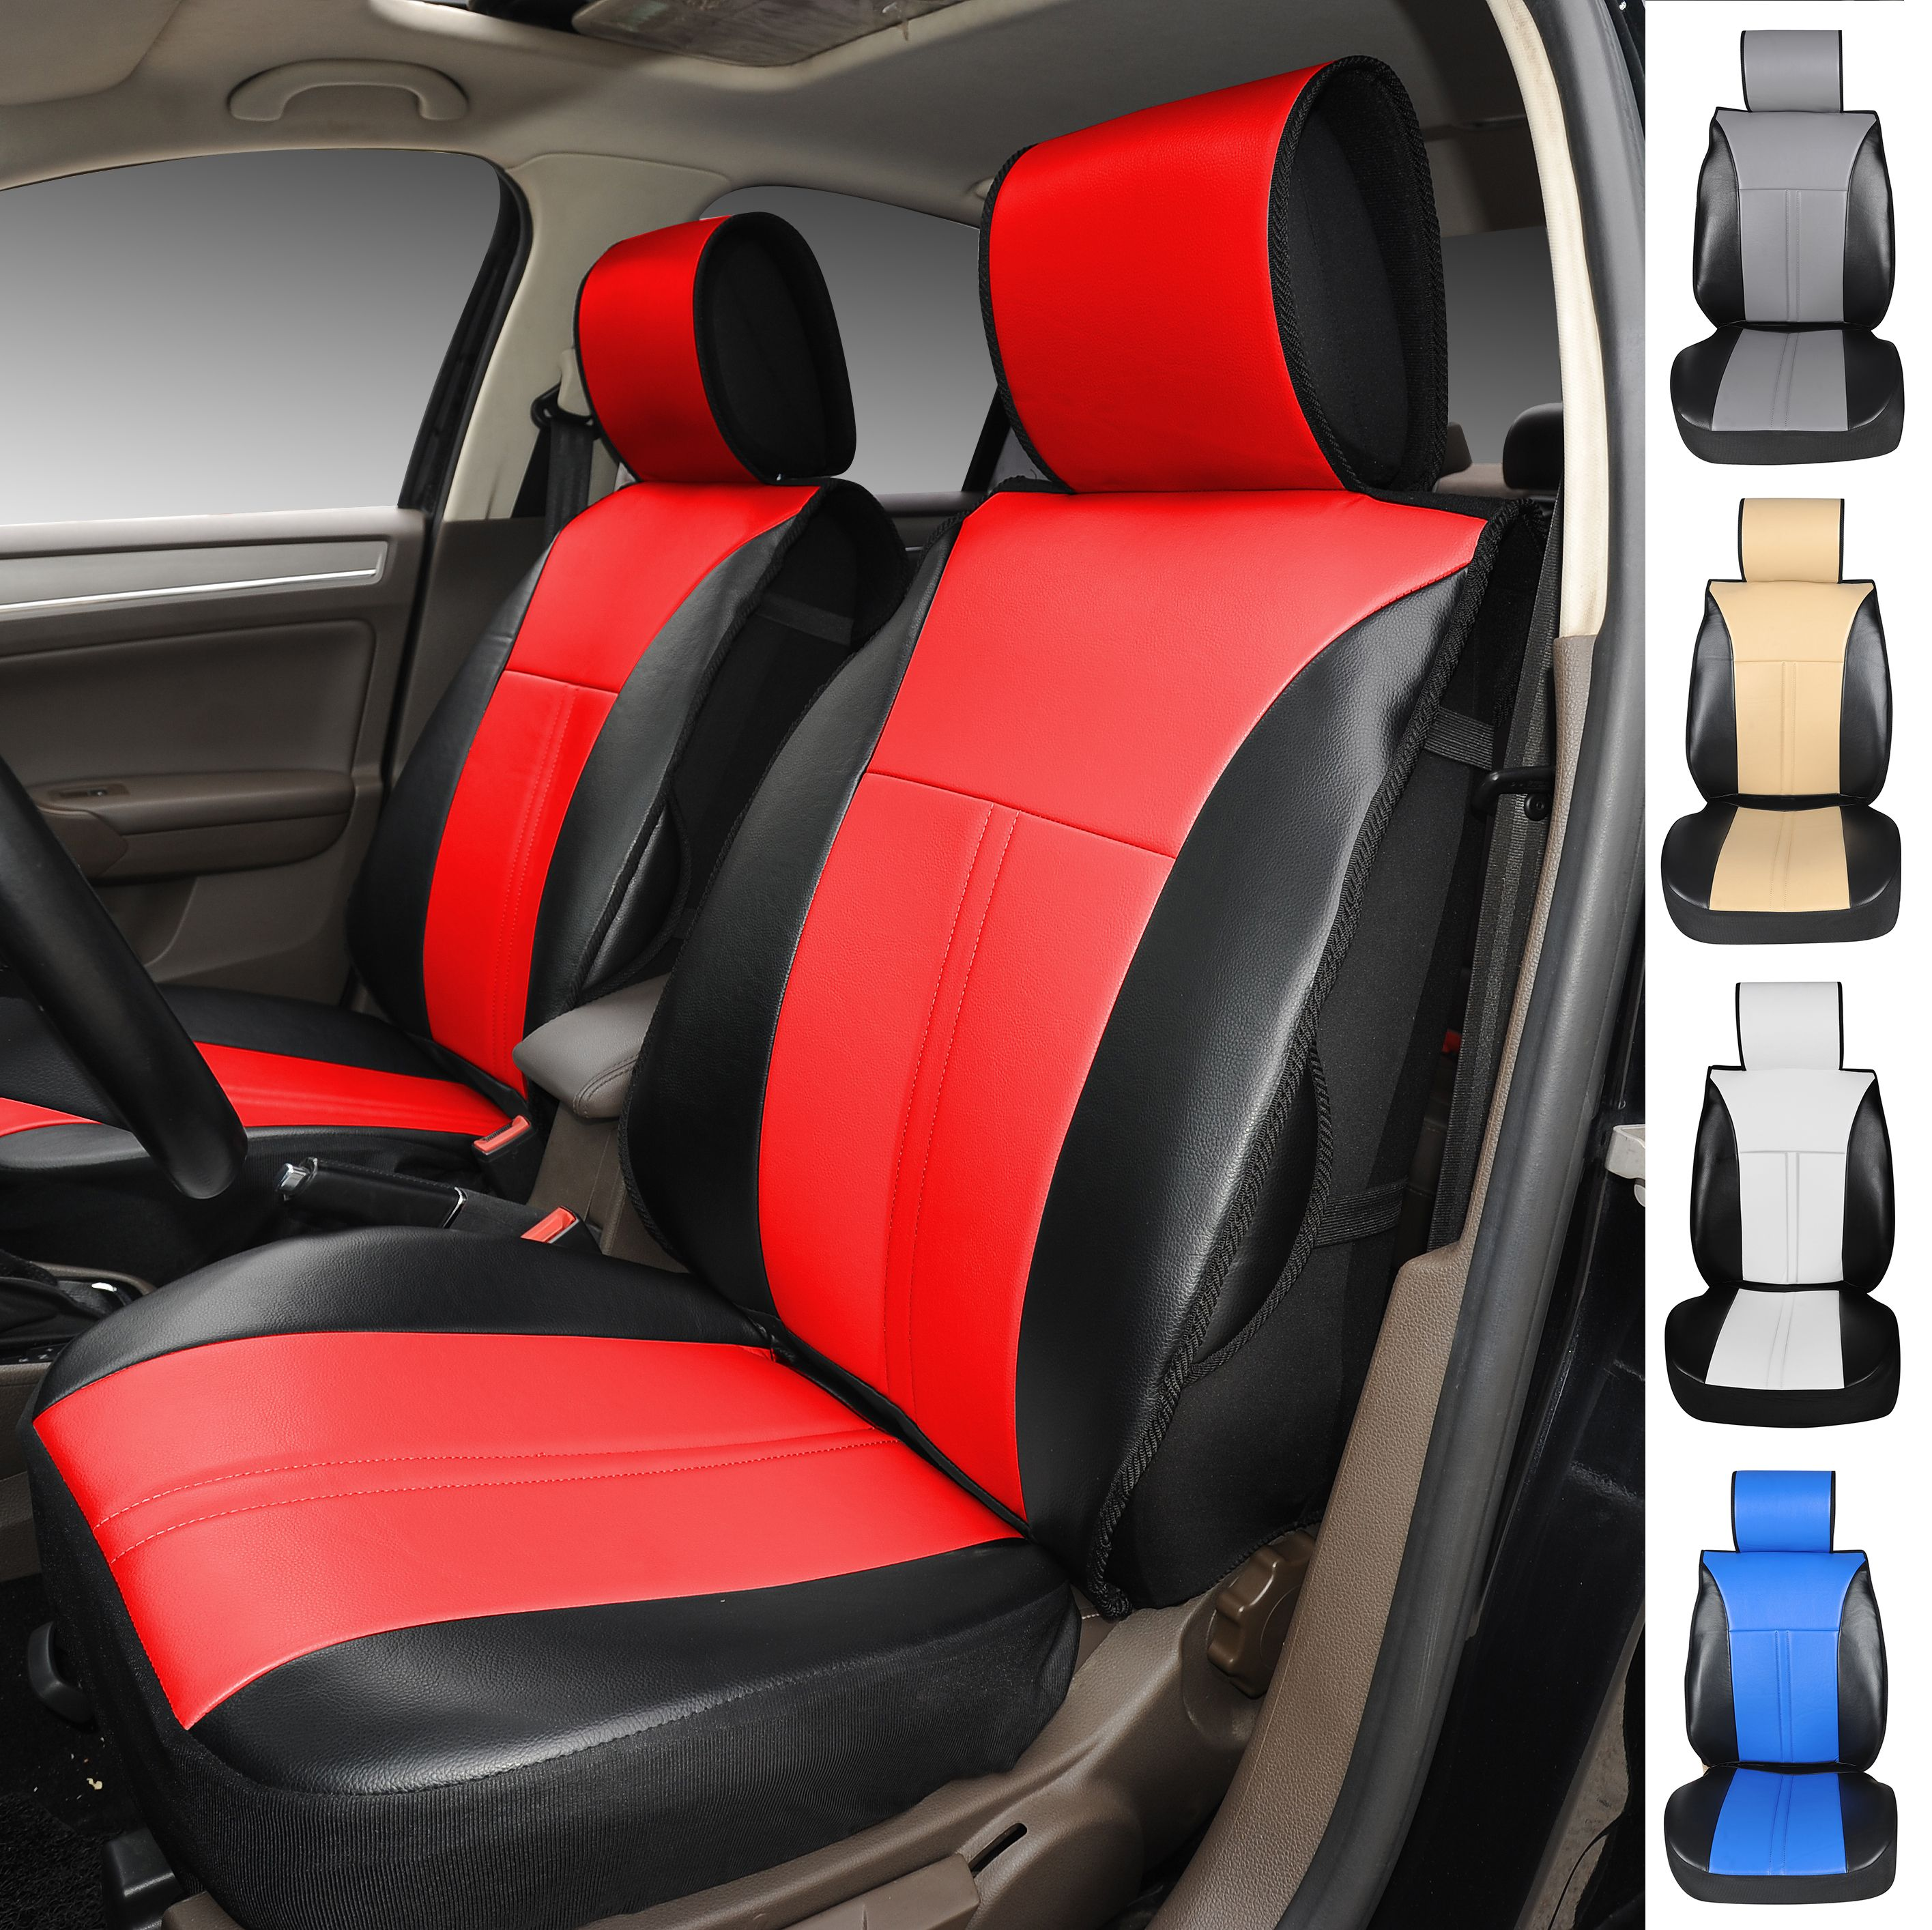 pin by protech auto accessory on car seat cushion cover pinterest seat covers jeep and cars. Black Bedroom Furniture Sets. Home Design Ideas